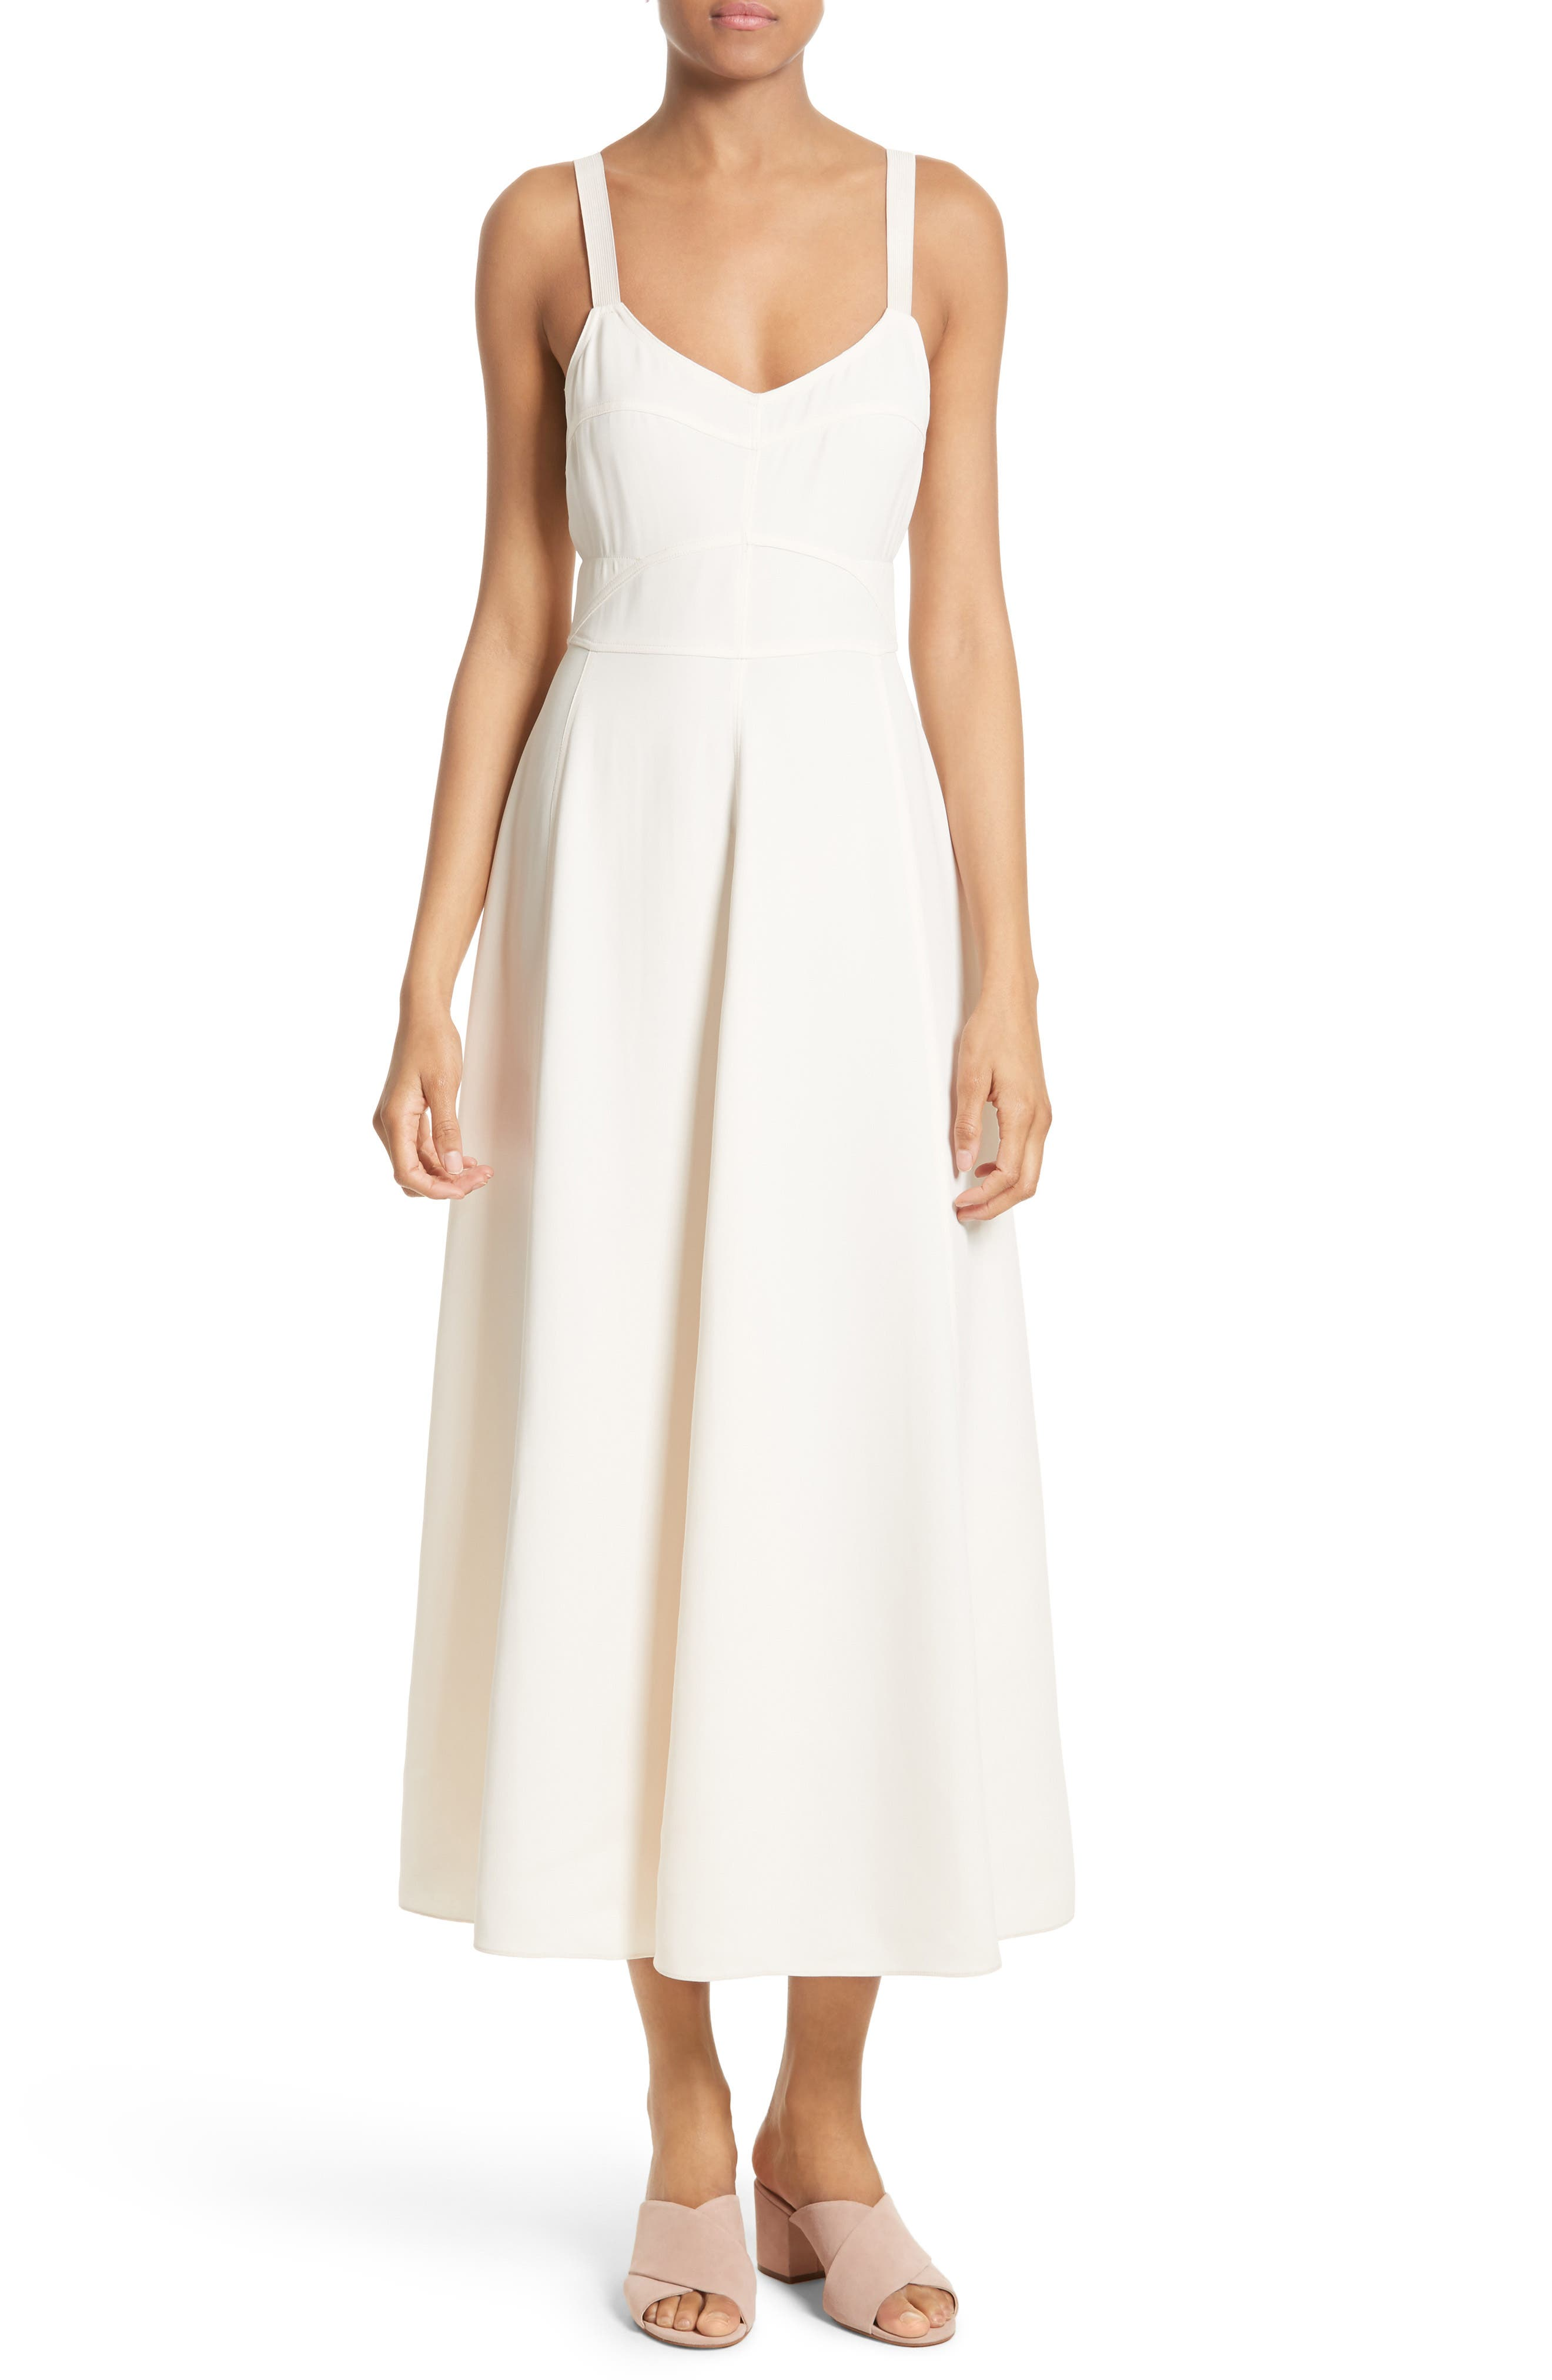 Elizabeth and James Cynthia Fit & Flare Midi Dress